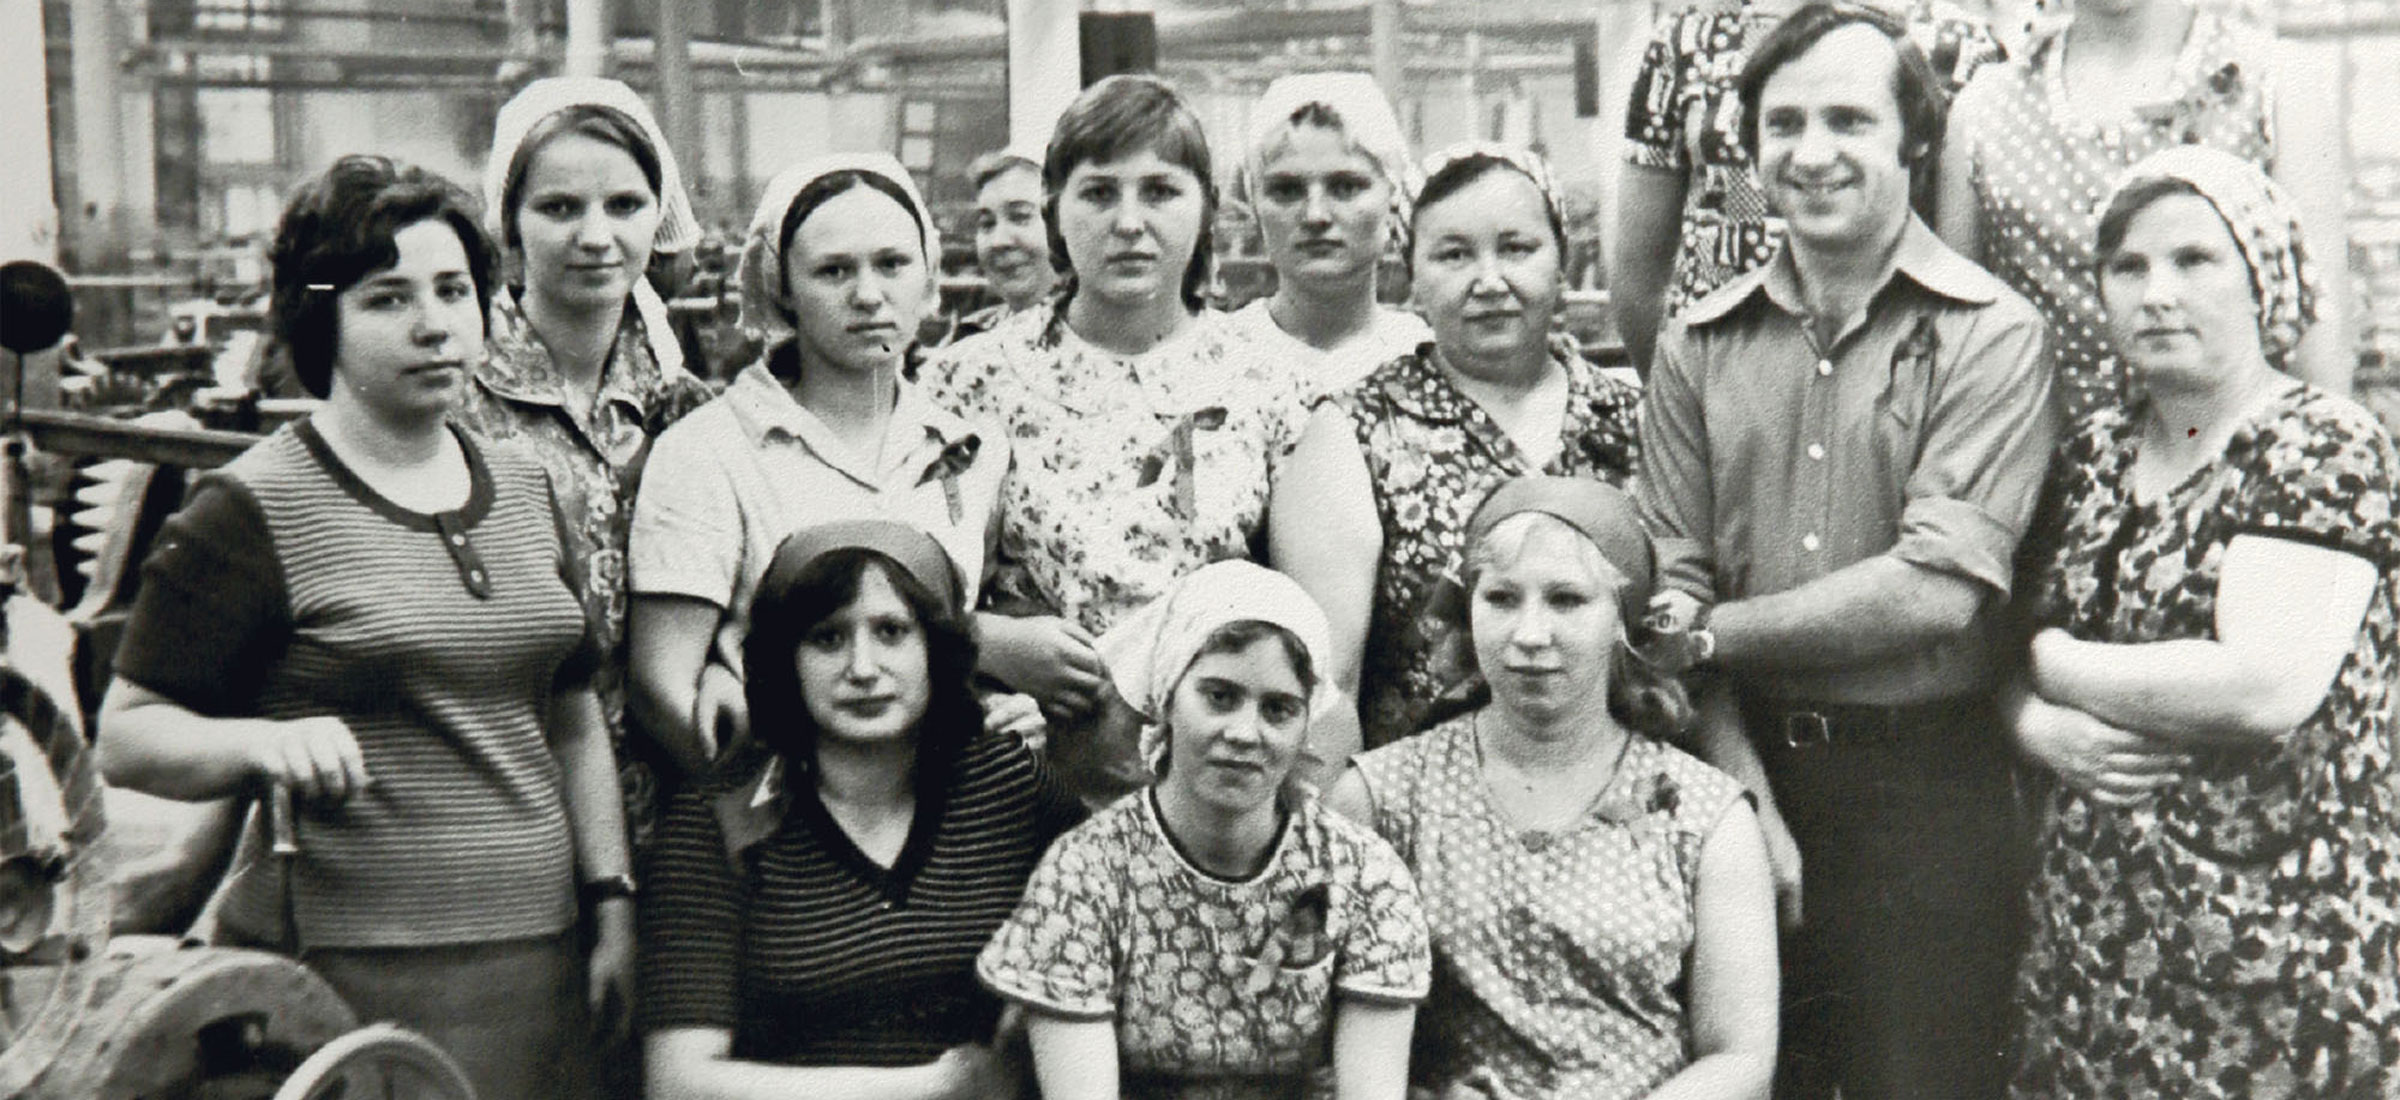 Help unravel the untold stories of sisterhood at a former Soviet textile mill in Estonia